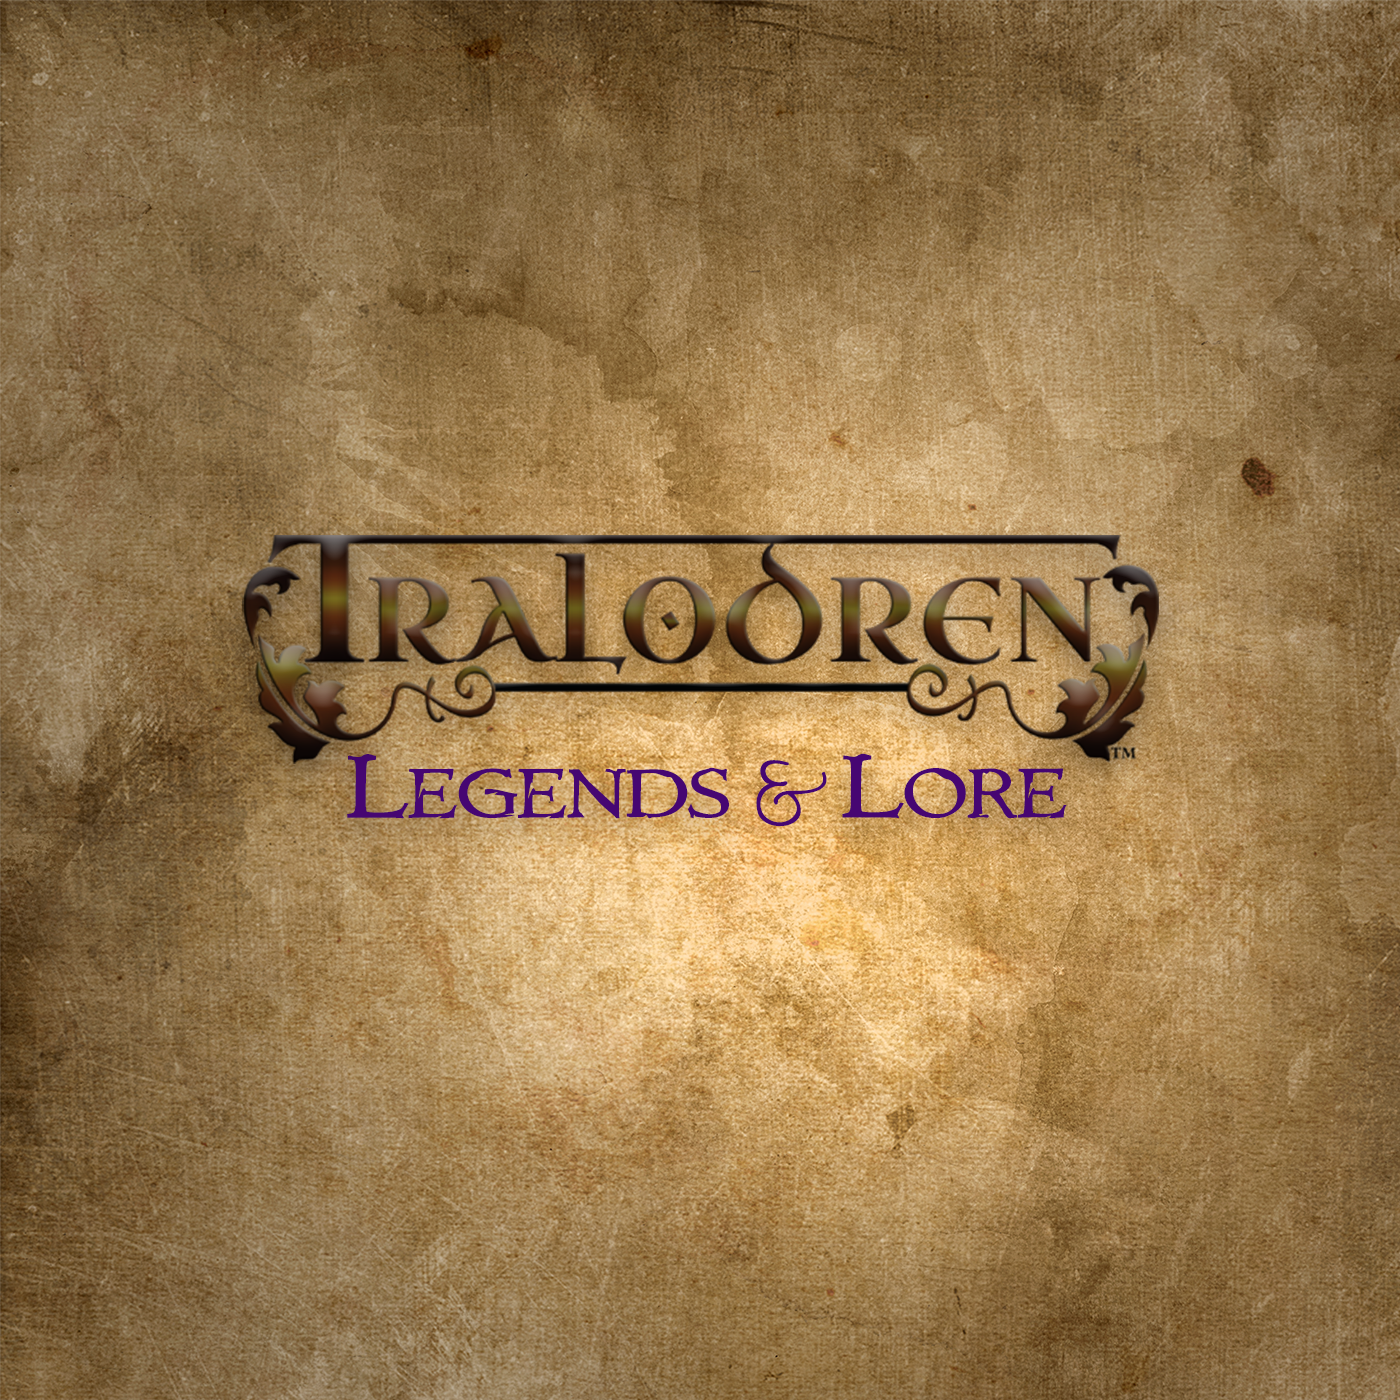 Tralodren: Legends and Lore